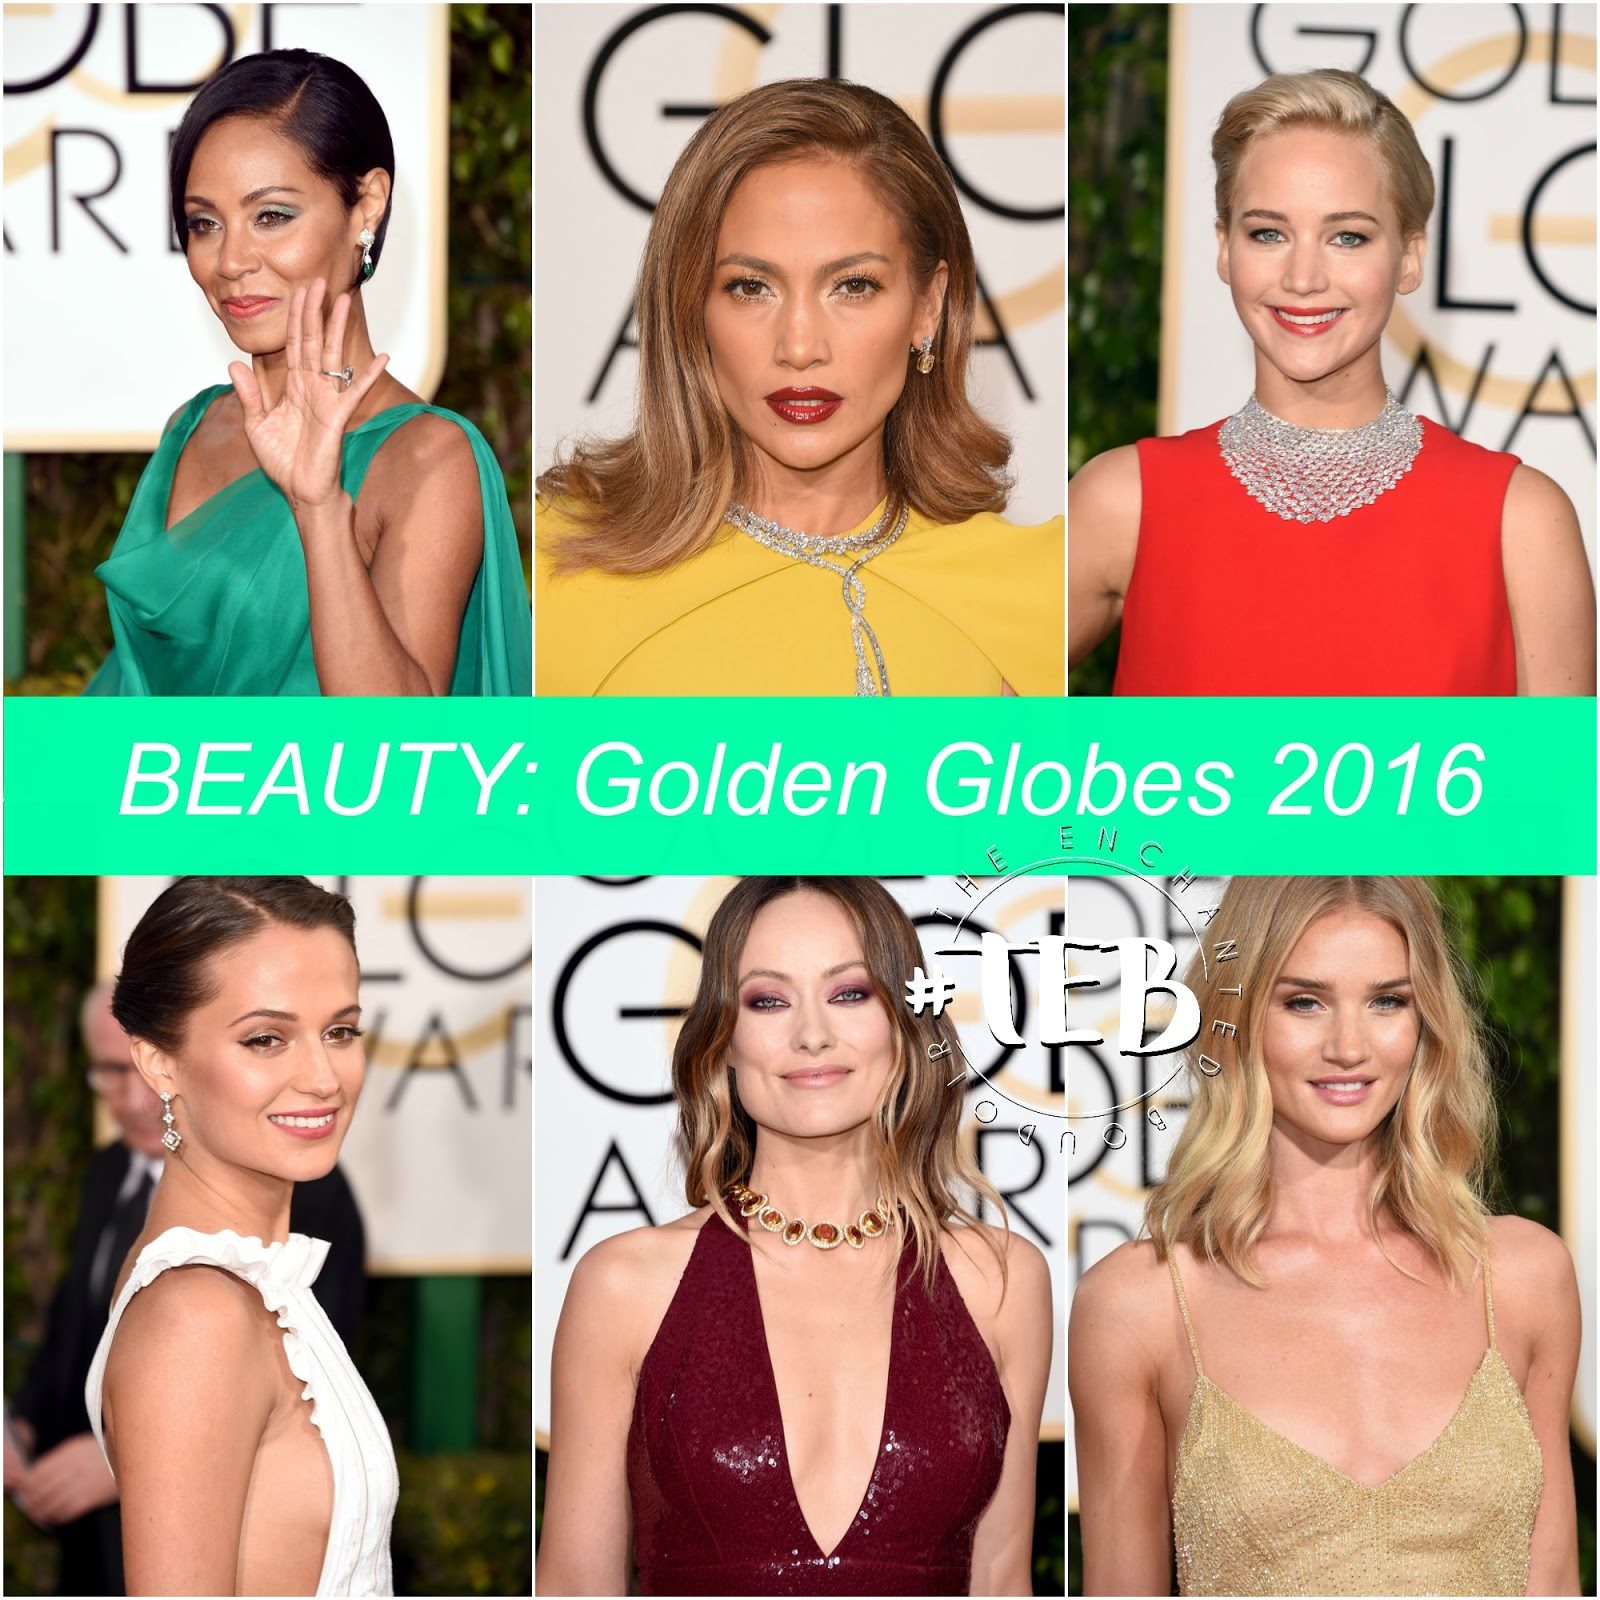 BEAUTY: THE BEST LOOKS FROM THE GOLDEN GLOBES